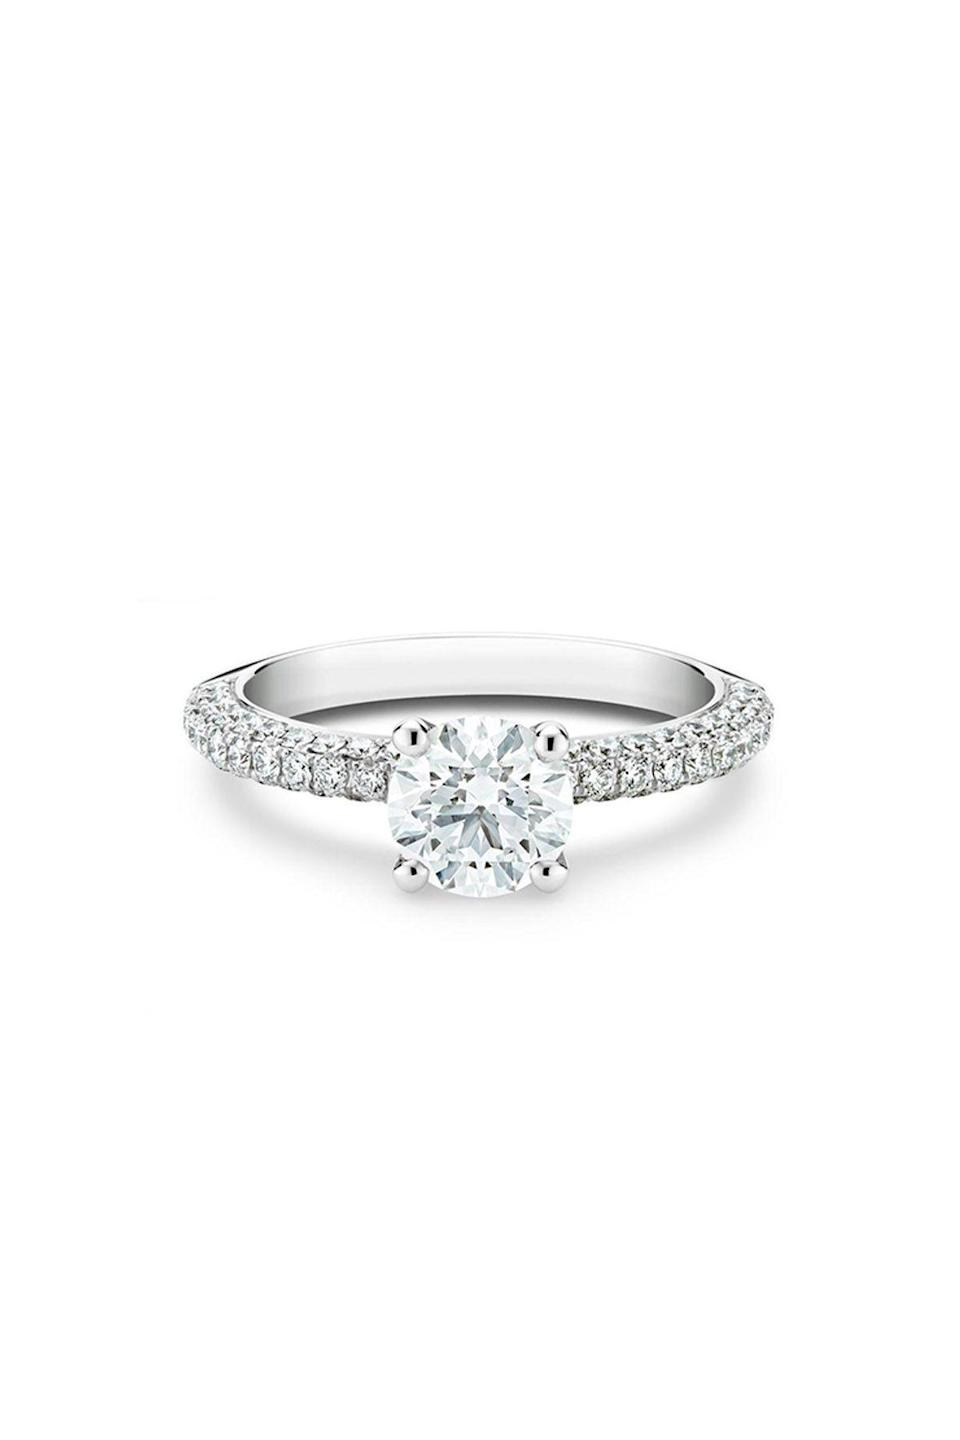 """<p><strong>De Beers</strong></p><p>debeers.com</p><p><strong>$14600.00</strong></p><p><a href=""""https://www.debeers.com/en-us/db-darling-round-brilliant-diamond-ring/R102215.html"""" rel=""""nofollow noopener"""" target=""""_blank"""" data-ylk=""""slk:Shop Now"""" class=""""link rapid-noclick-resp"""">Shop Now</a></p><p>If sweet, simple, and to the point is your preferred style, then a solitaire with a diamond half band is the way to go. It will sit comfortably on your finger while complementing your future wedding band.</p>"""